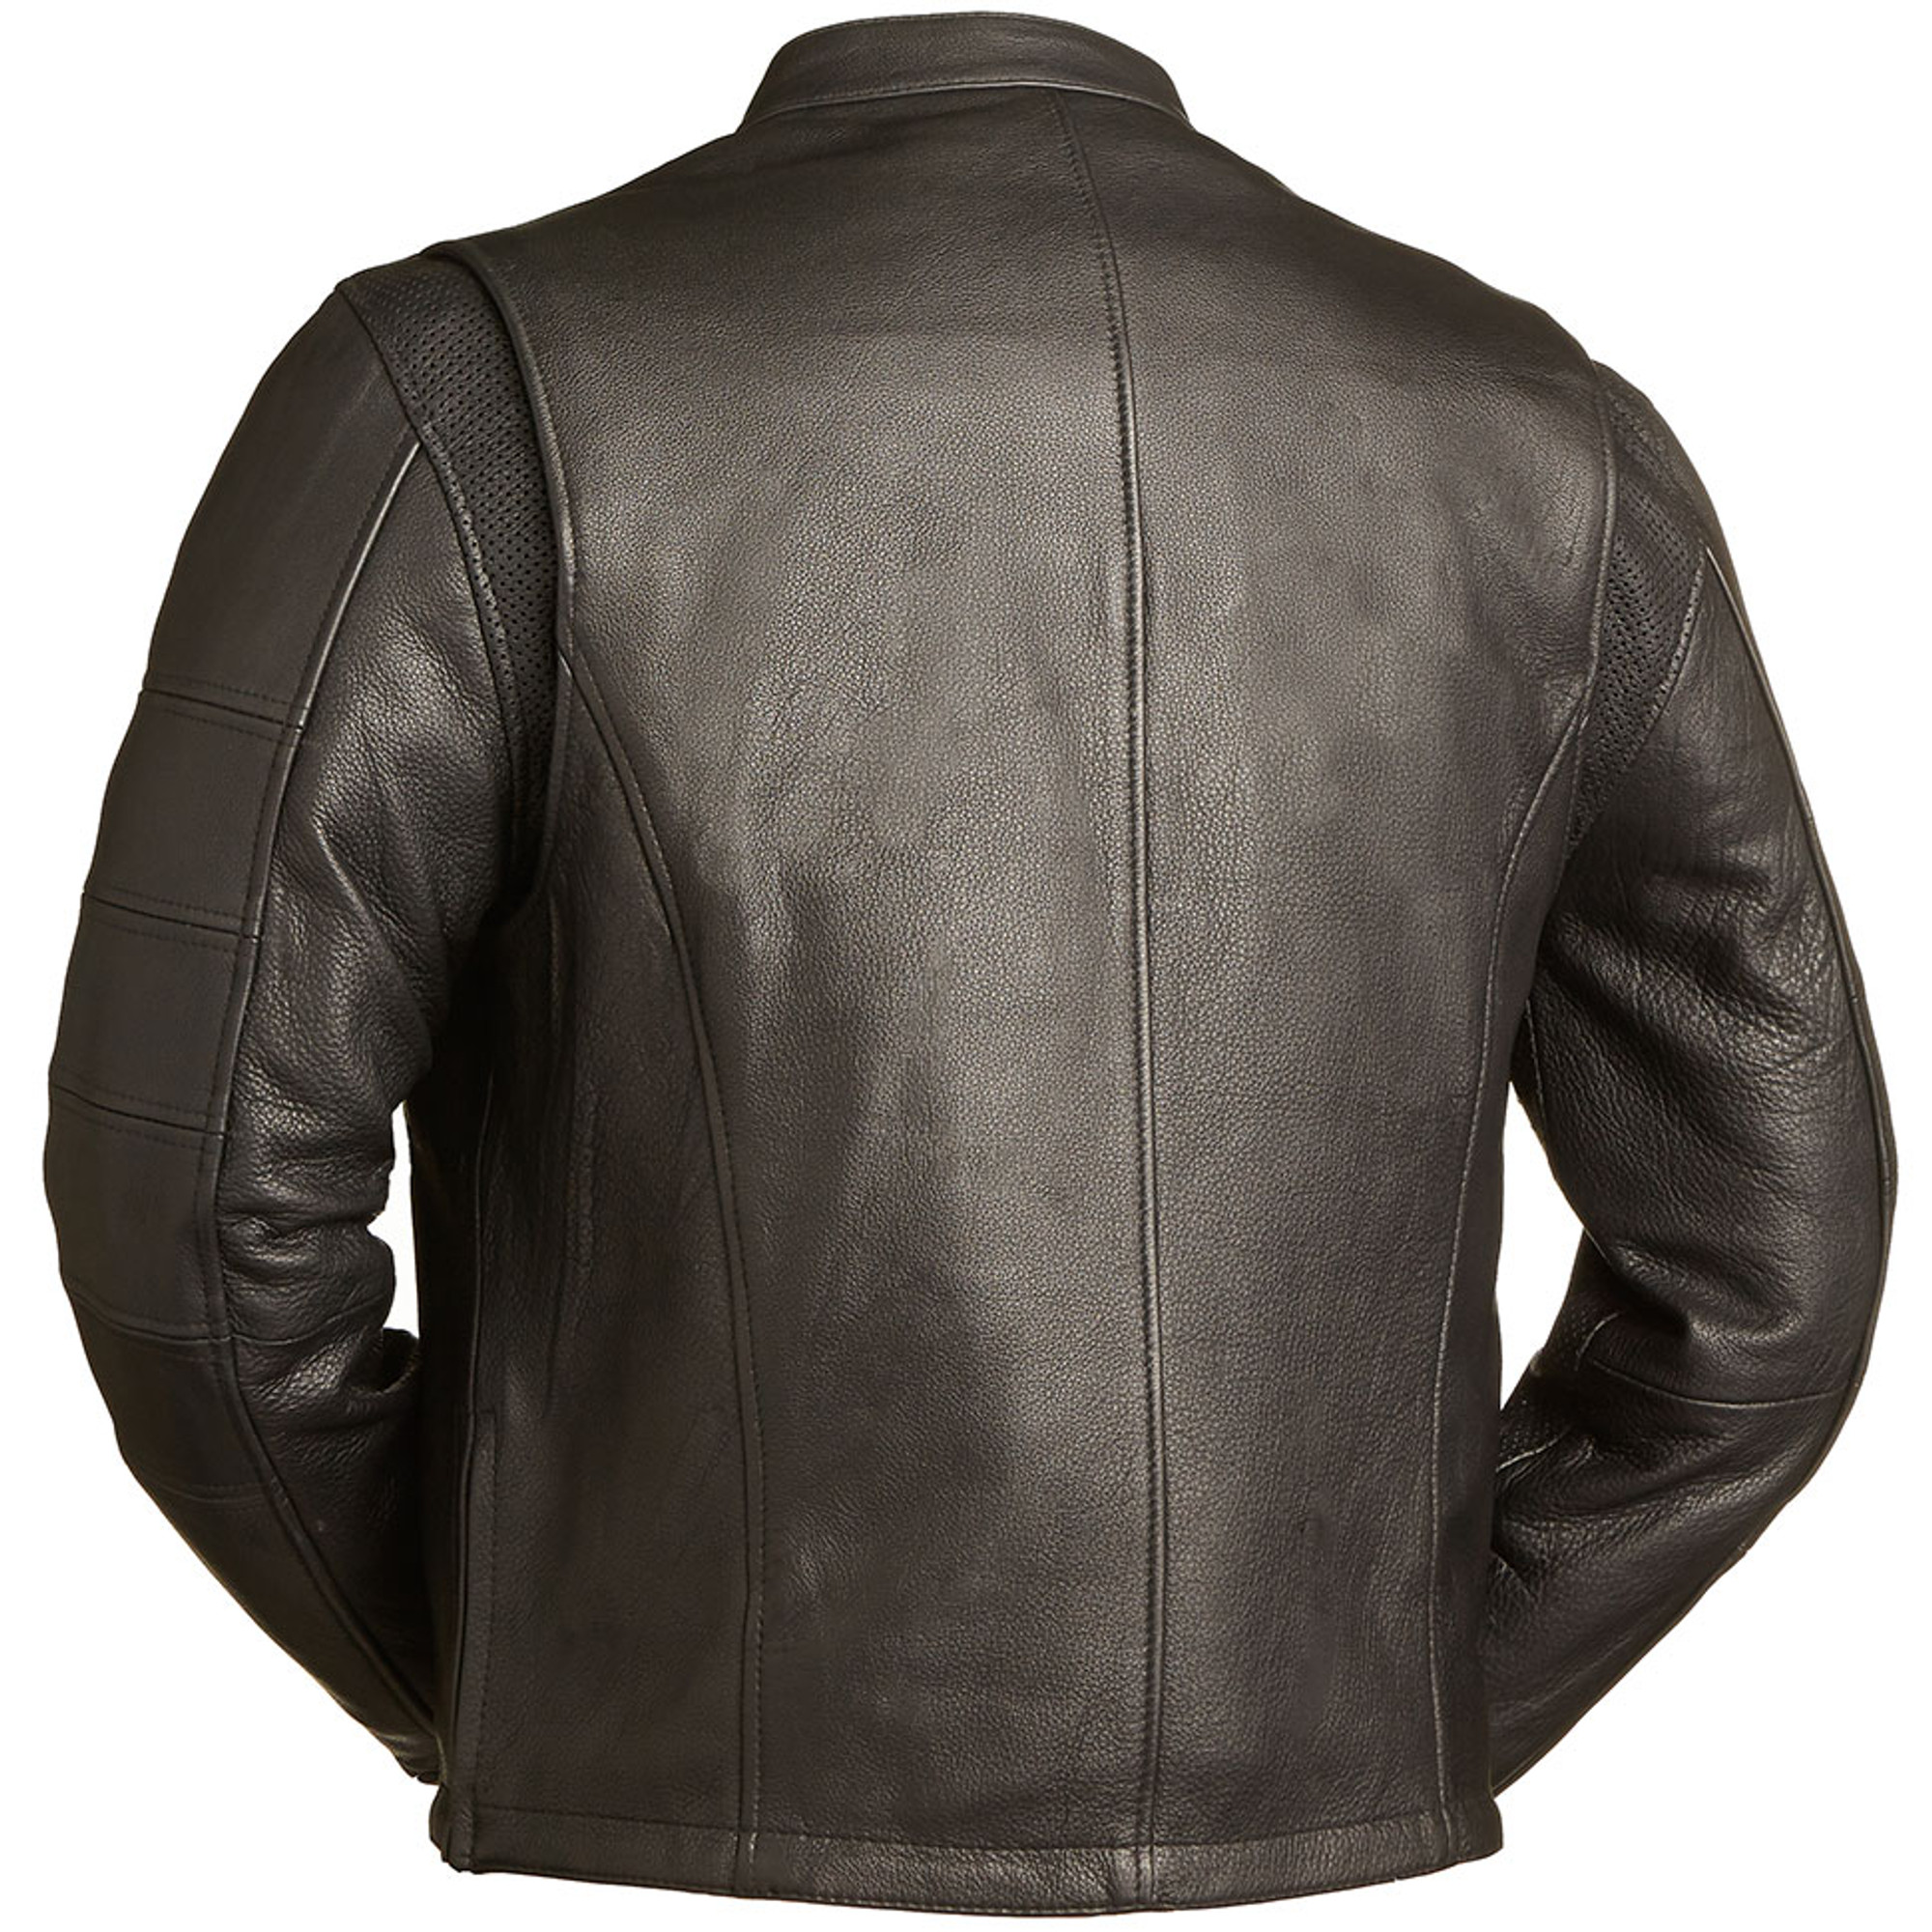 First manufacturing leather jackets